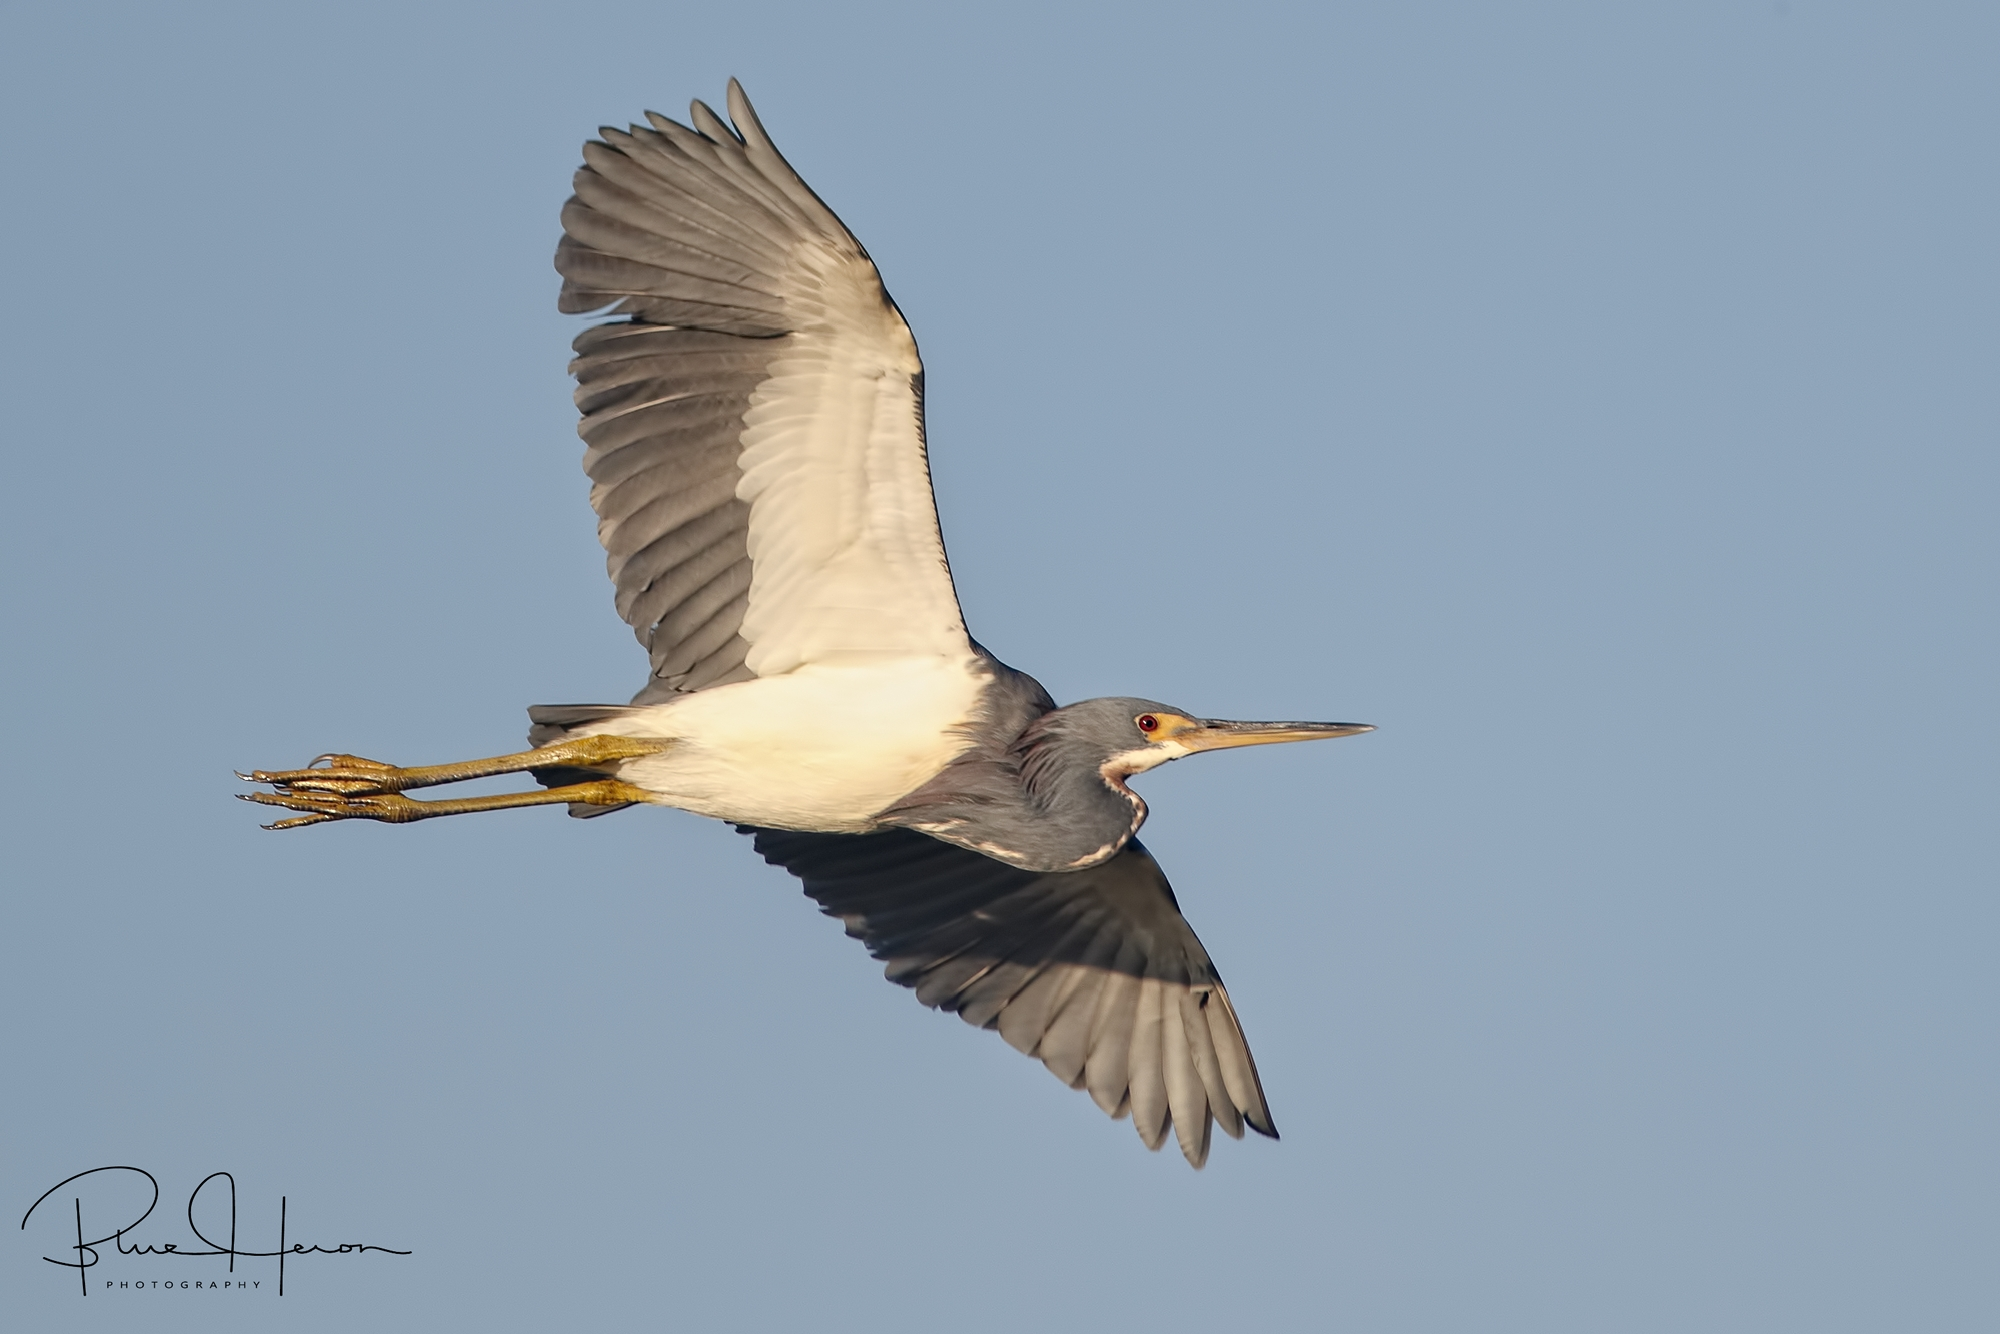 Tricolored Heron wings by heading for the dock